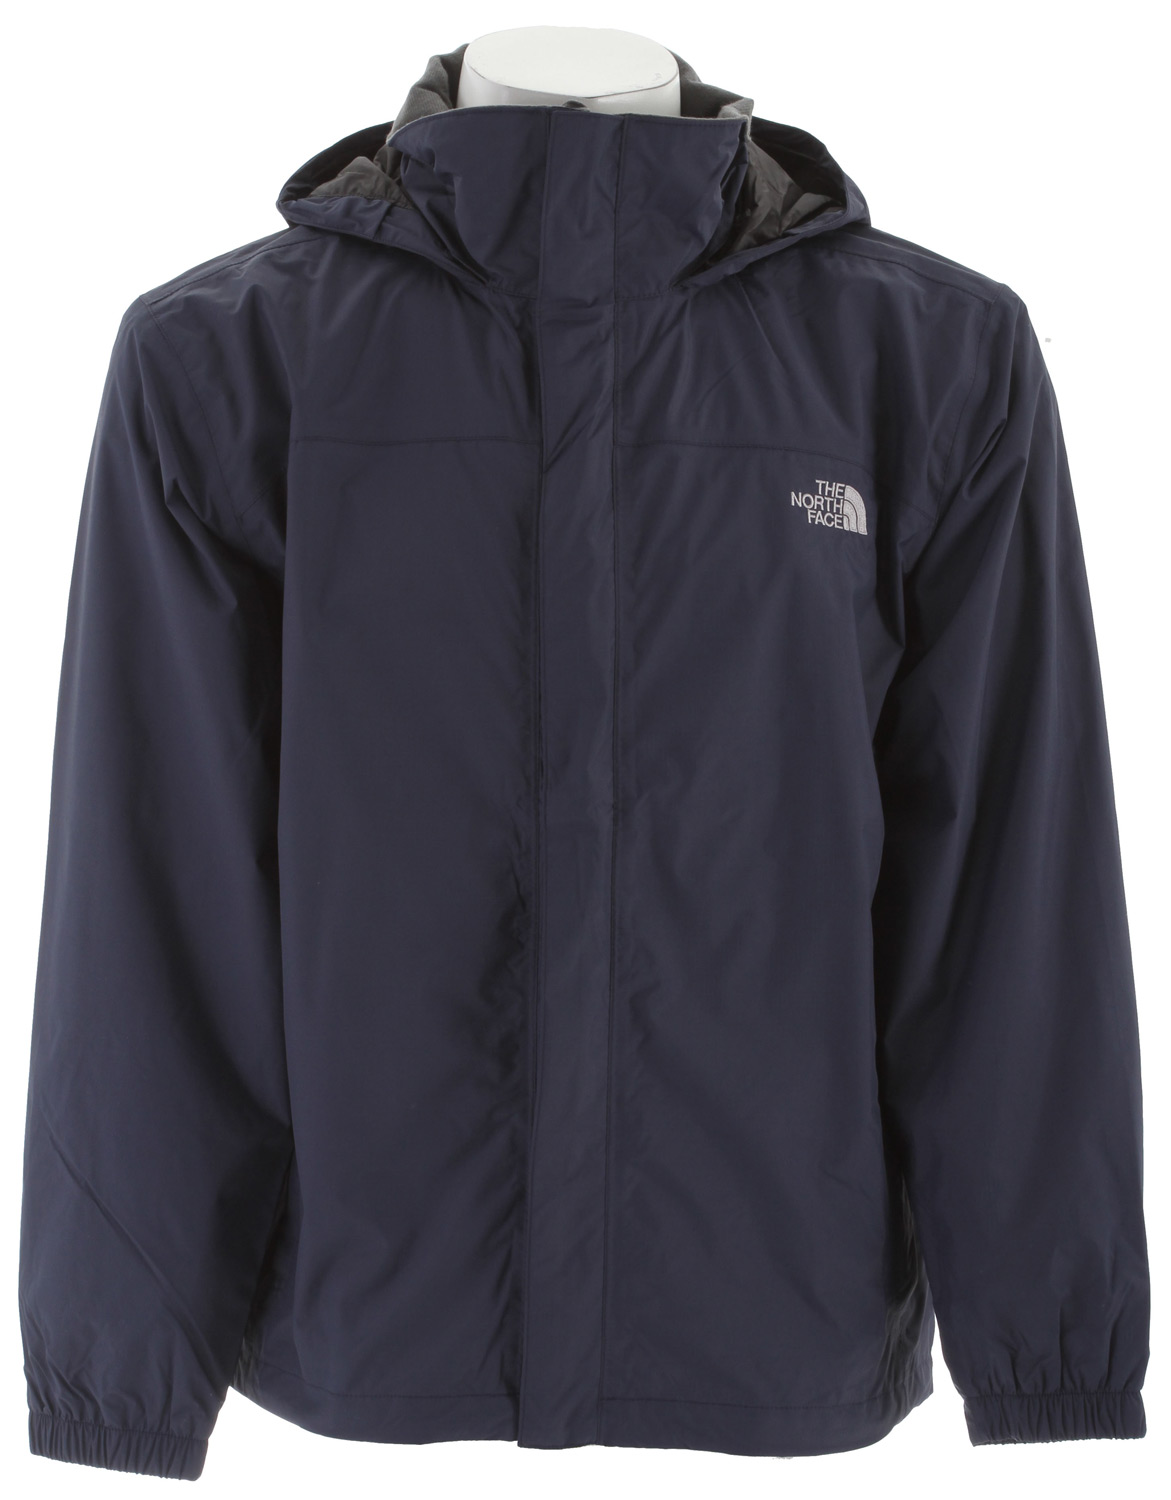 Mesh-lined, waterproof, breathable, seam-sealed jacket equipped for hard play in the worst weather. Key Features of the The North Face Resolve Jacket: Fabric: body: 70D 105 g/m2 (3.1 oz/yd2) nylon ripstop HyVent® 2L lining: mesh knit Standard fit Waterproof, breathable, seam sealed Mesh lined Brushed collar lining Adjustable hood stows in collar Center front zip and Velcro® closure Two hand pockets Hem cinch-cord - $62.95